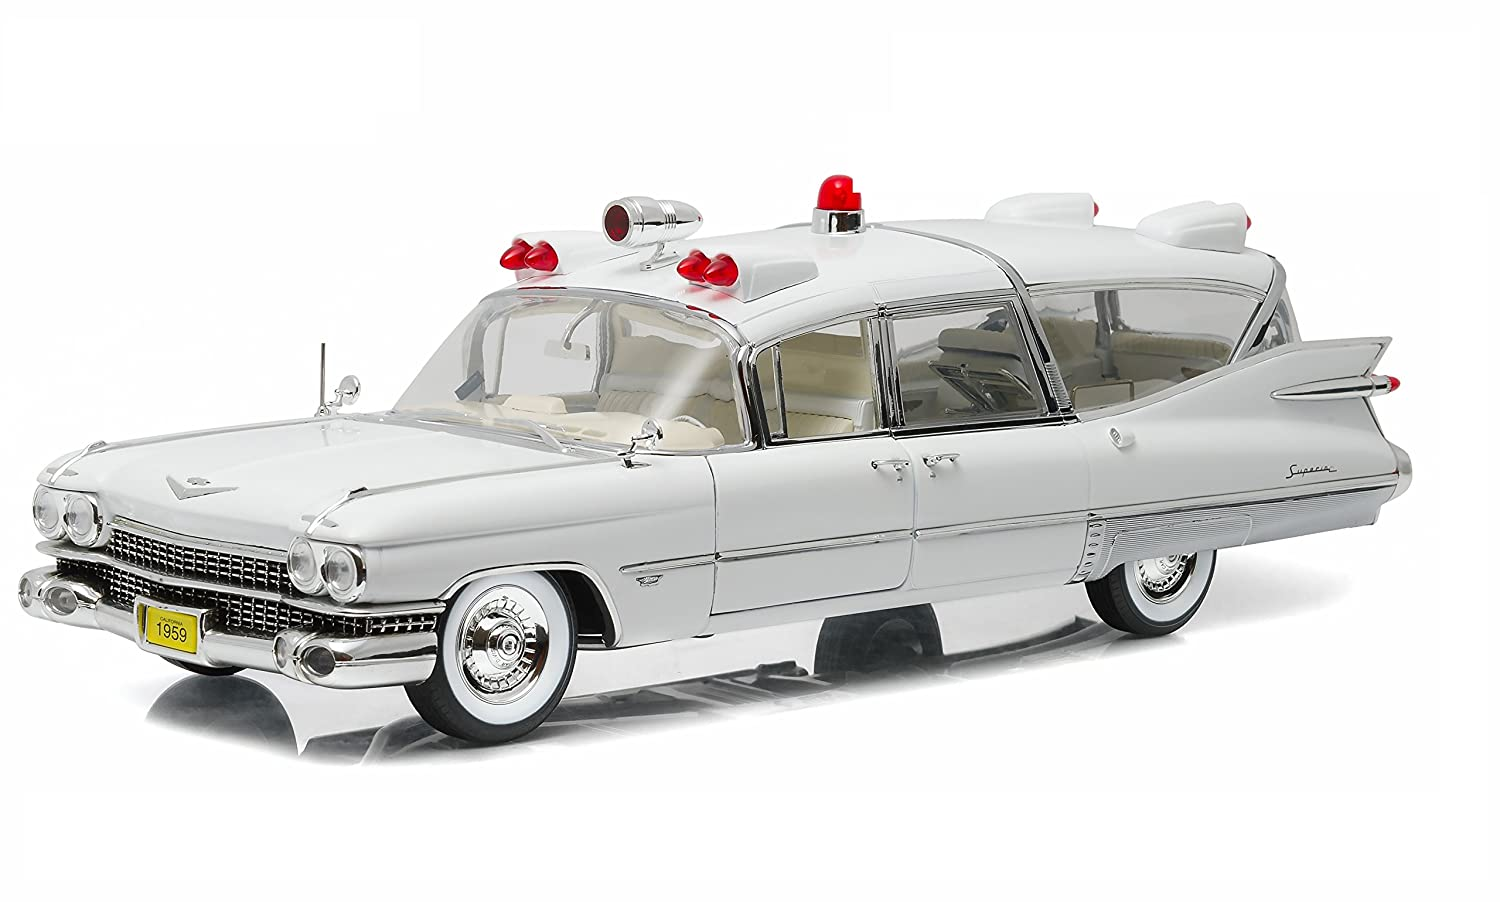 GreenLight Precision Collection 1959 Cadillac Ambulance Vehicle (1:18 Scale), White PC-18004